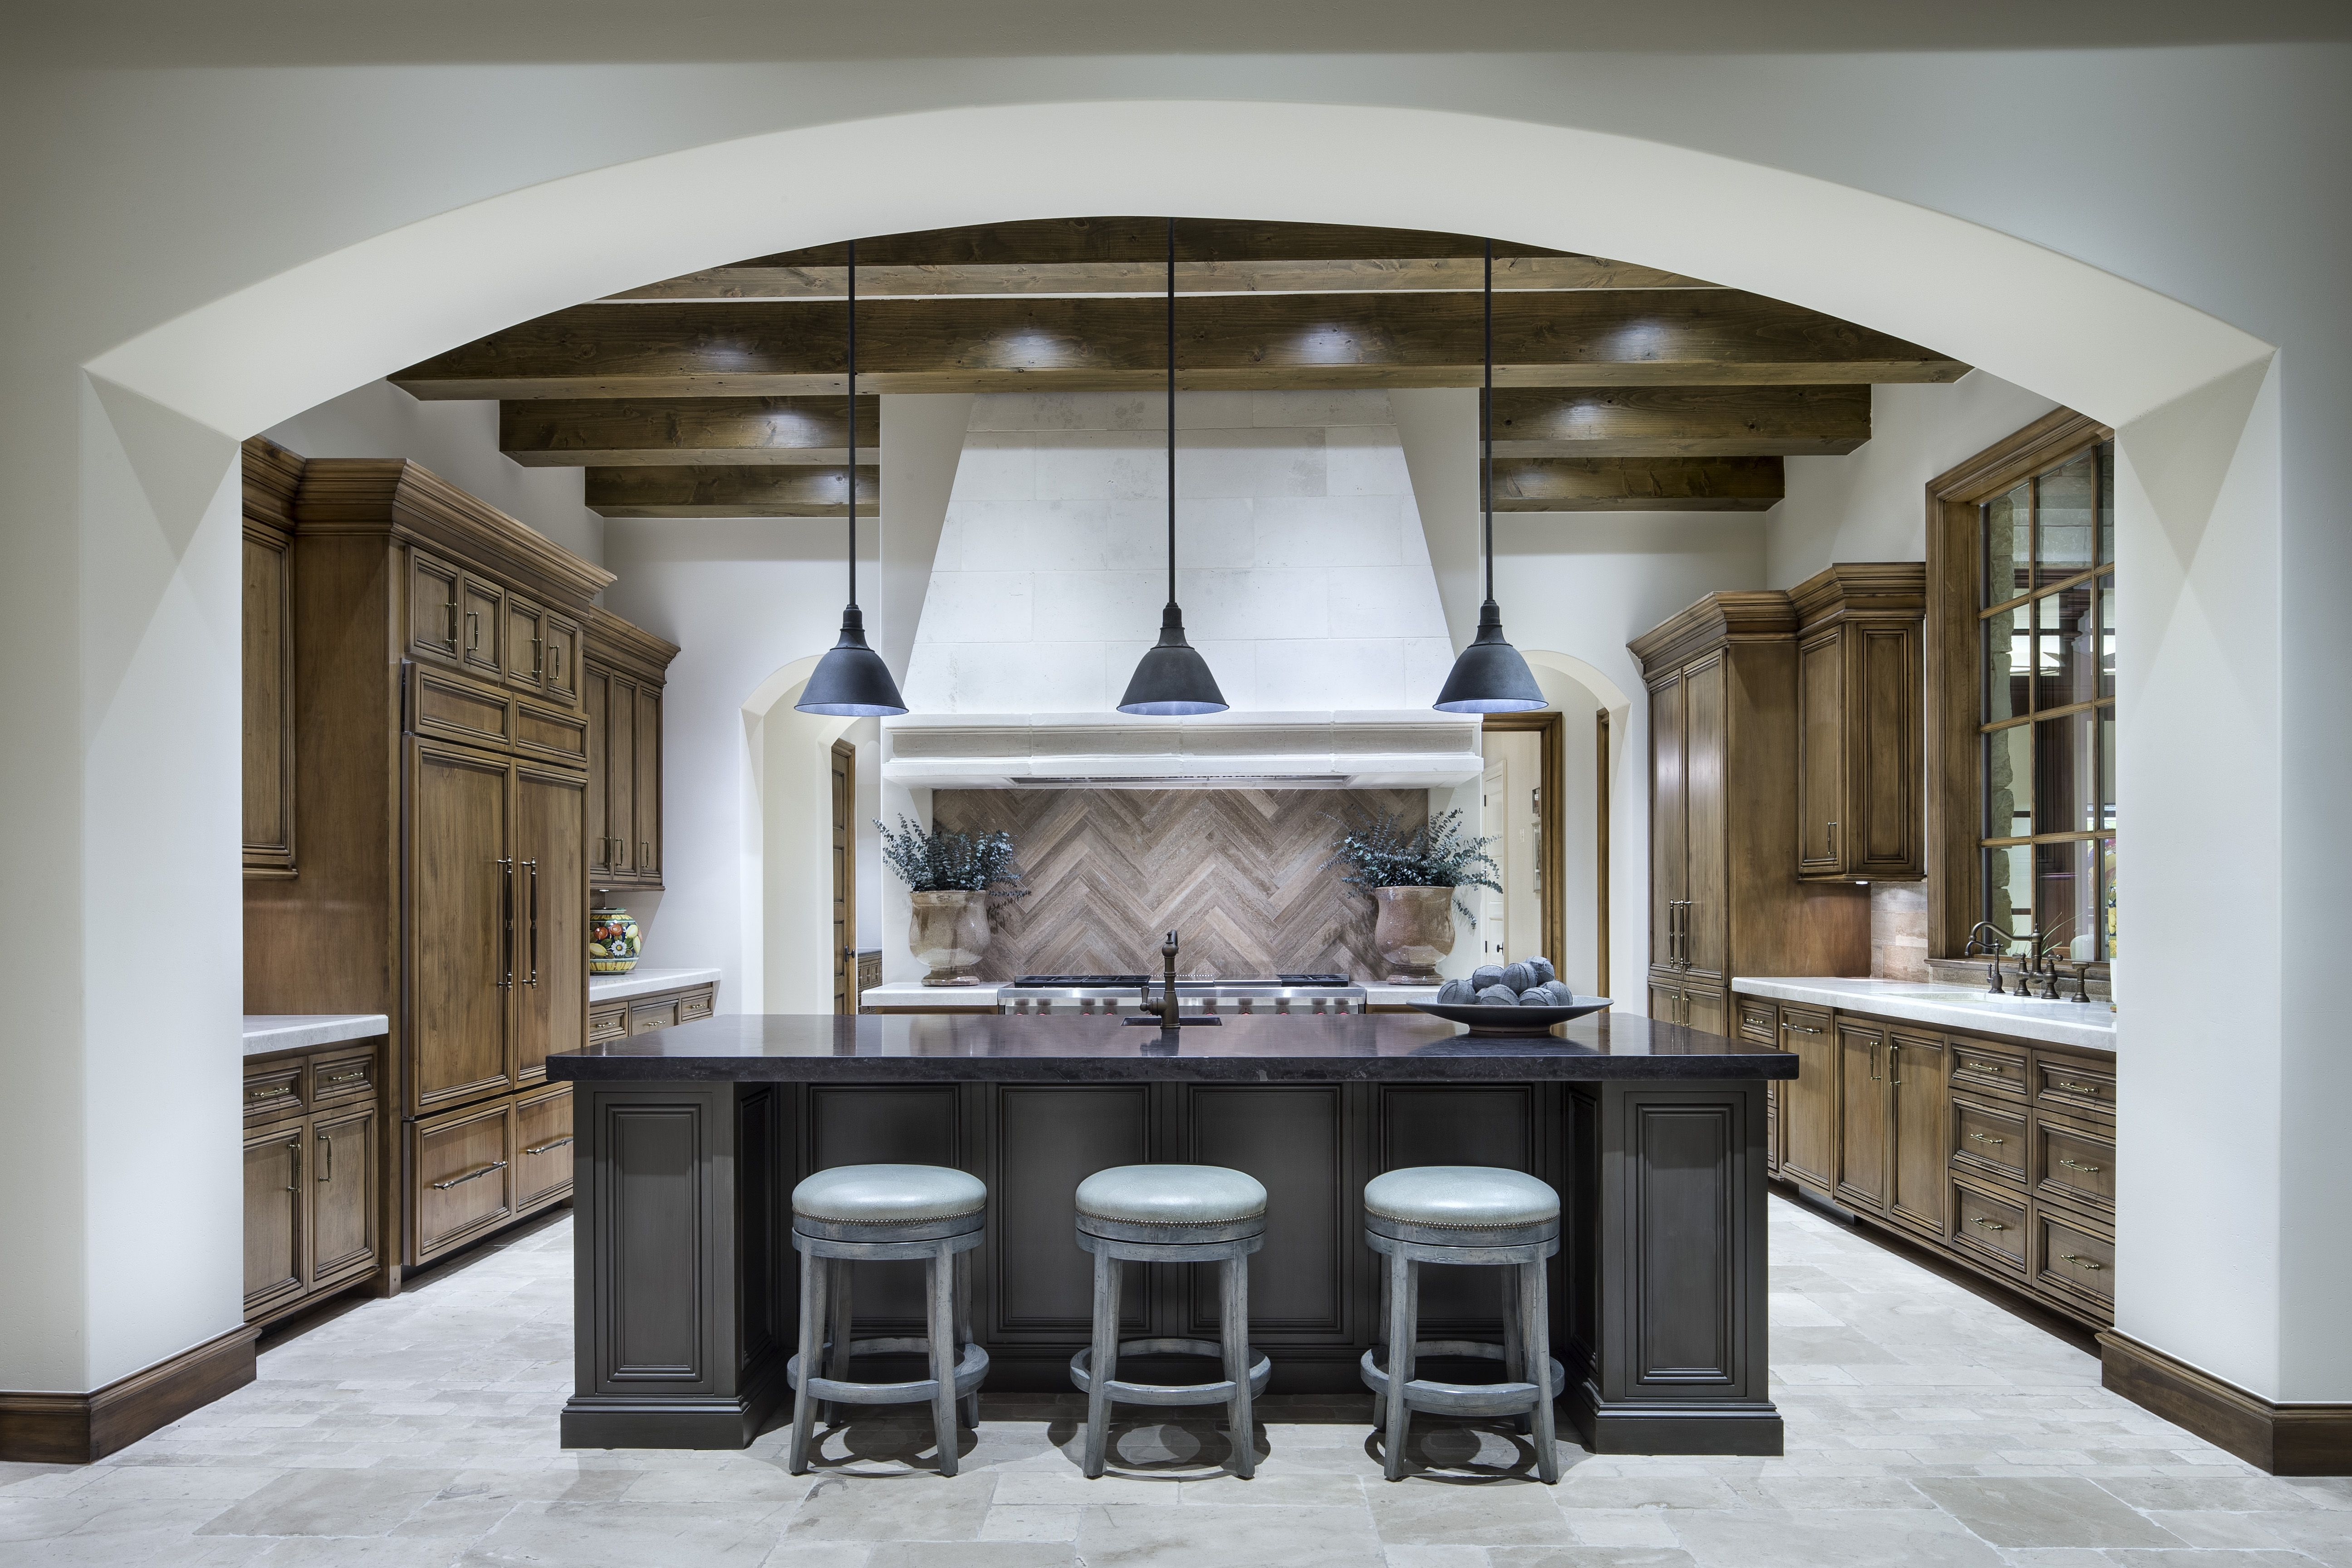 High Quality Luxurious French Country Modern Kitchen Design + Build By Jauregui  Architecture Interior Construction Part 19